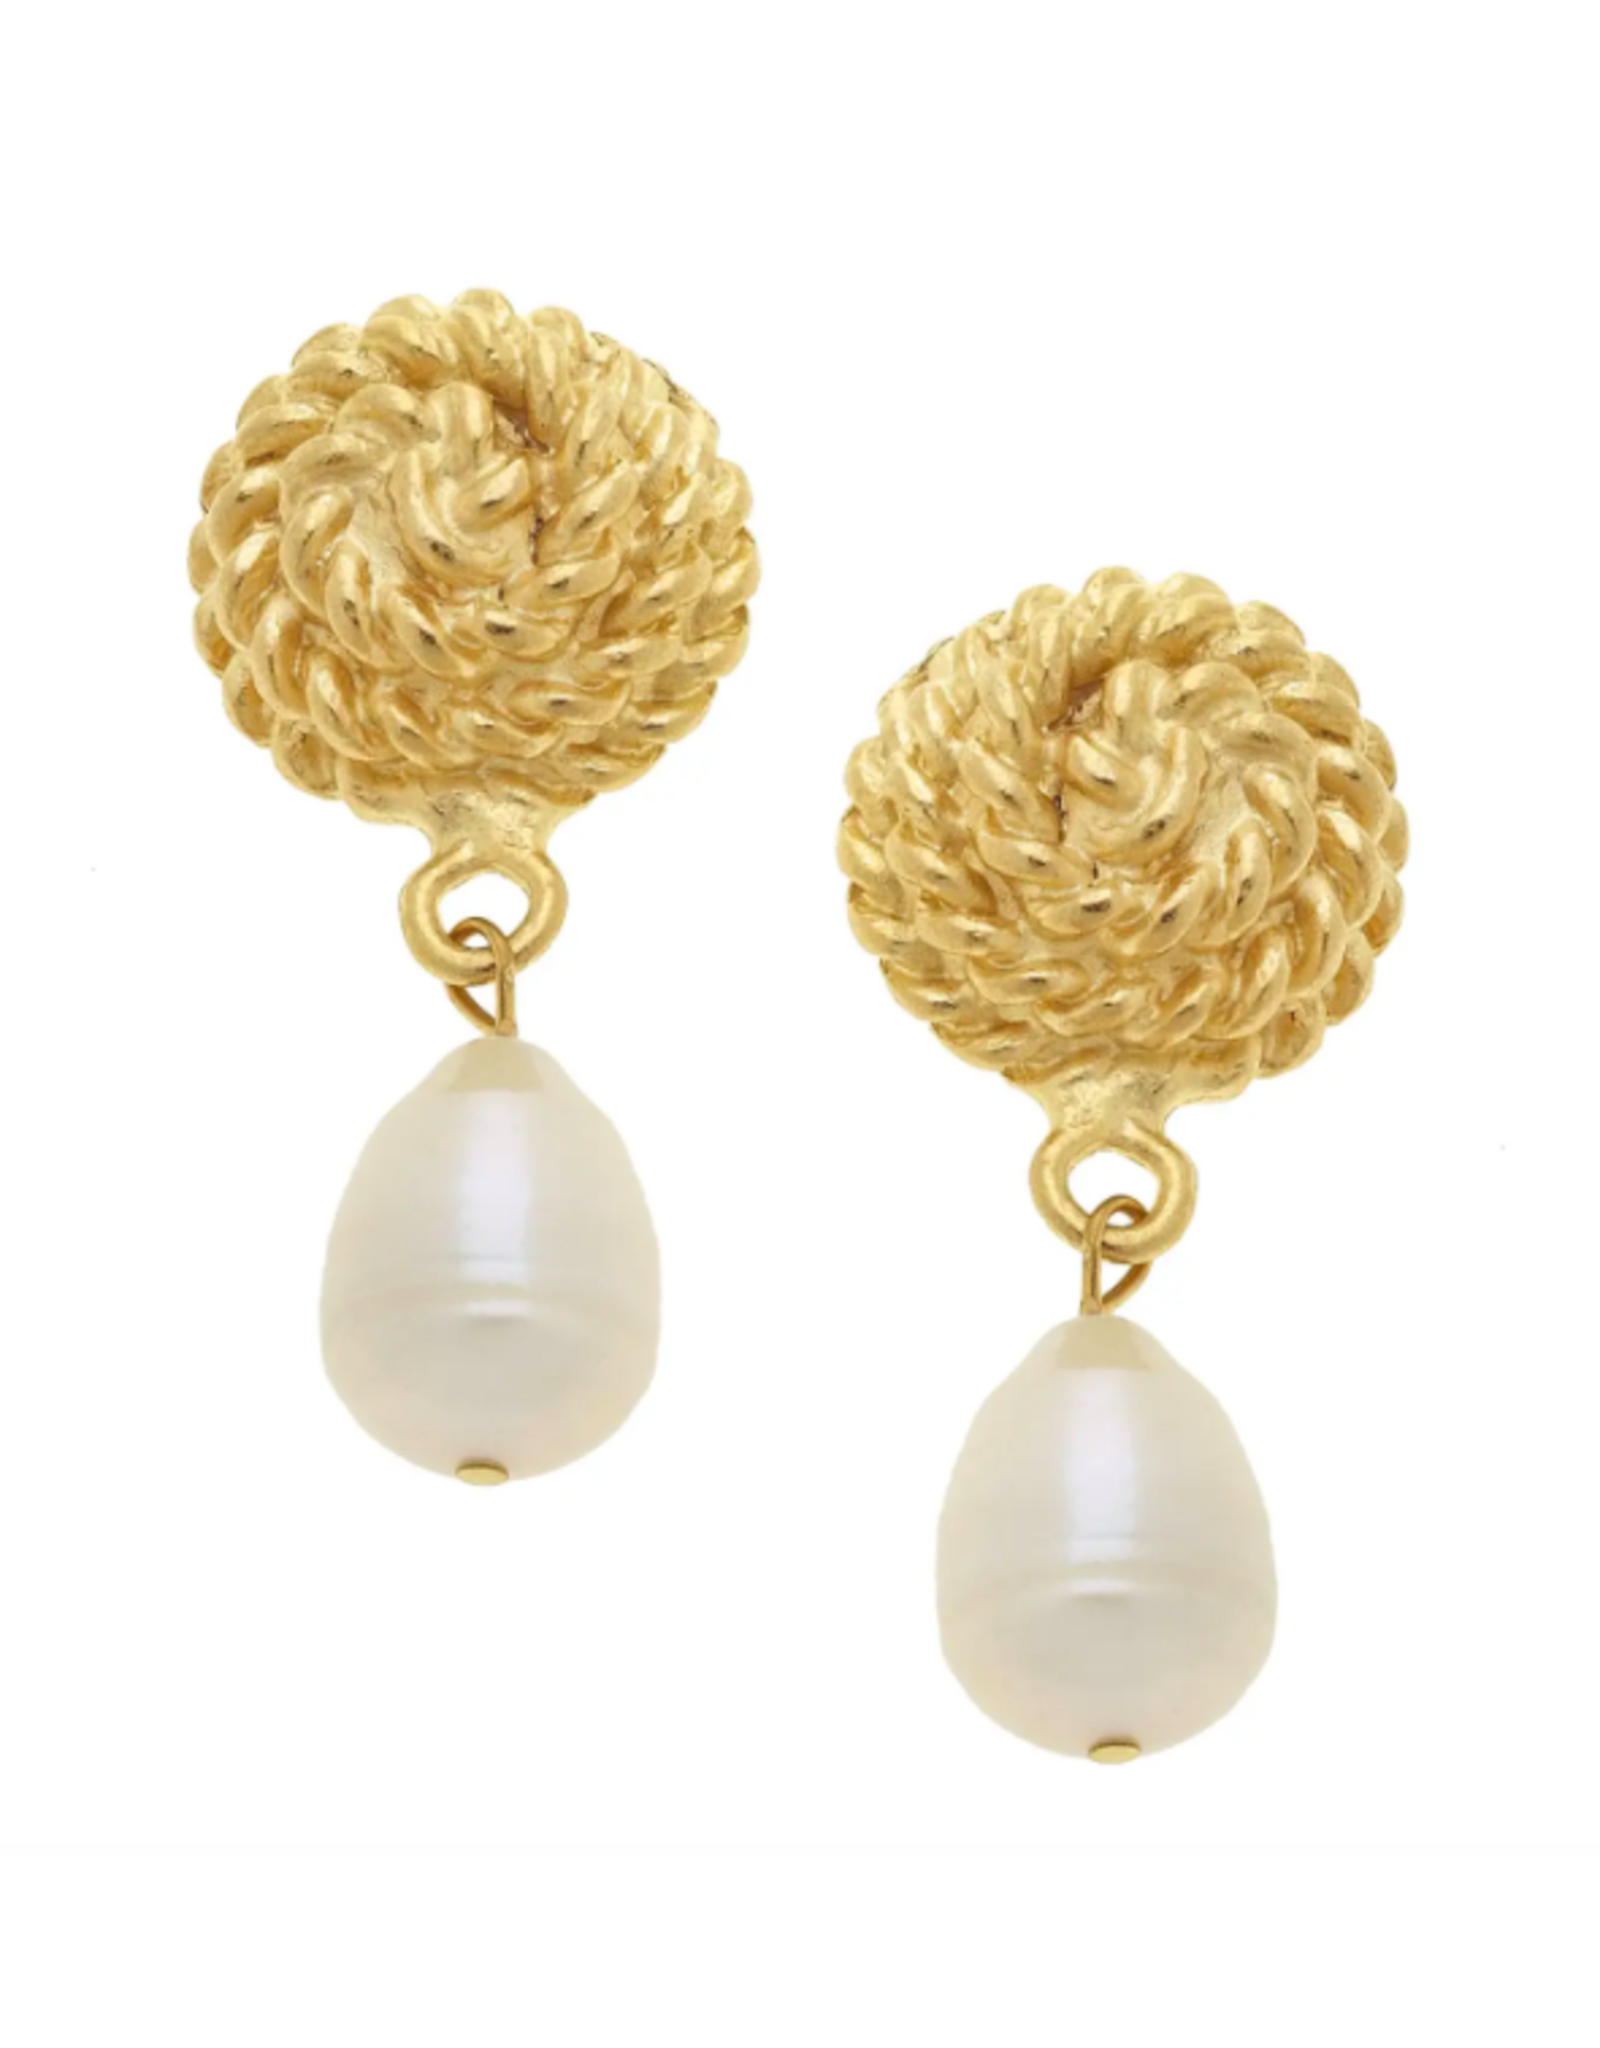 Susan Shaw Gold Knot and Pearl Drop Earrings by Susan Shaw